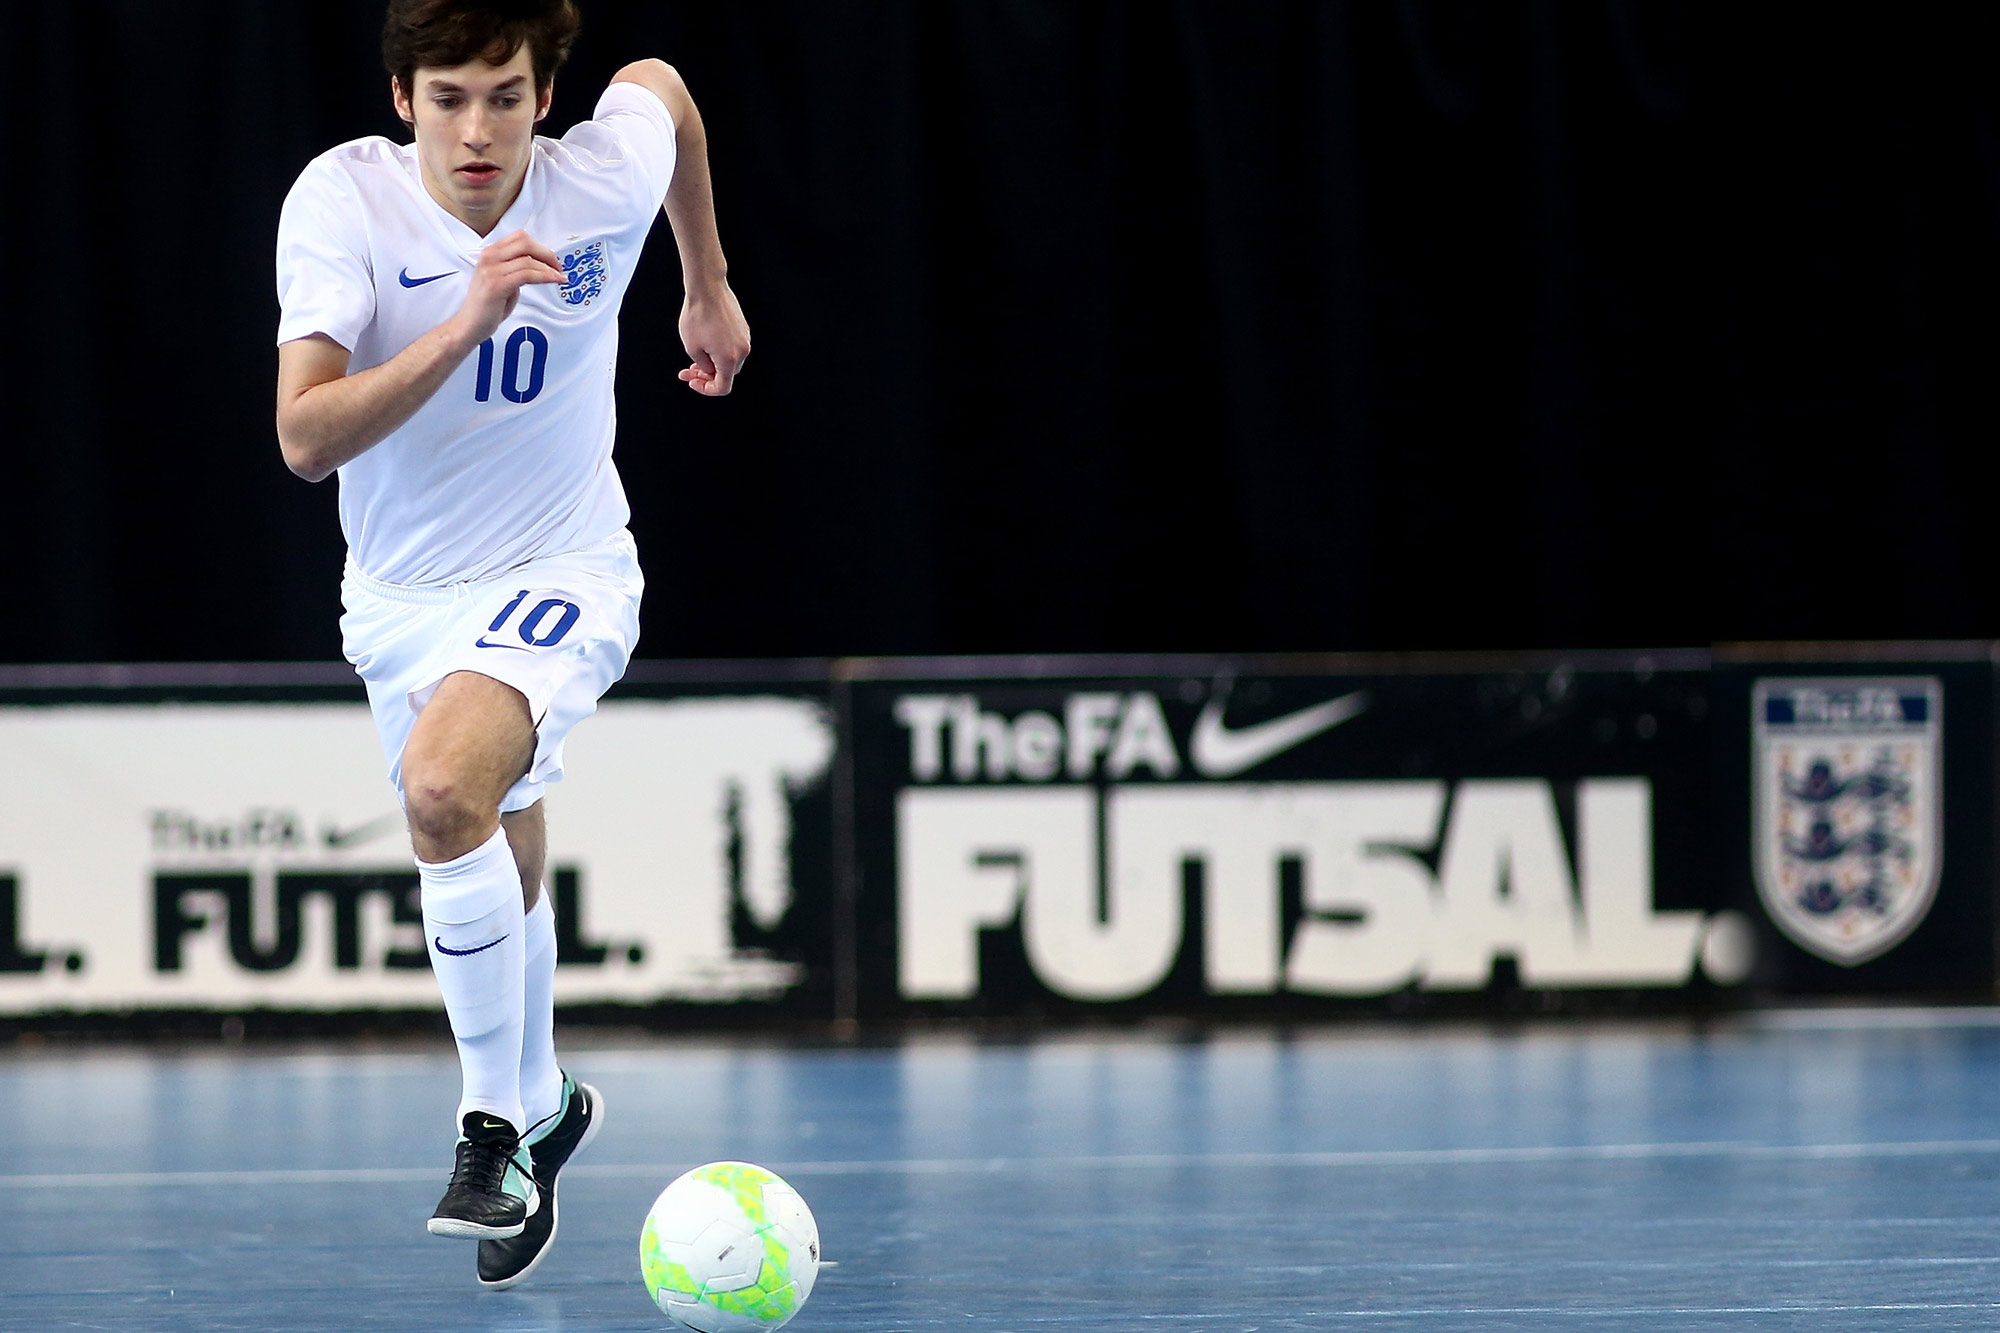 Welcome to England Futsal